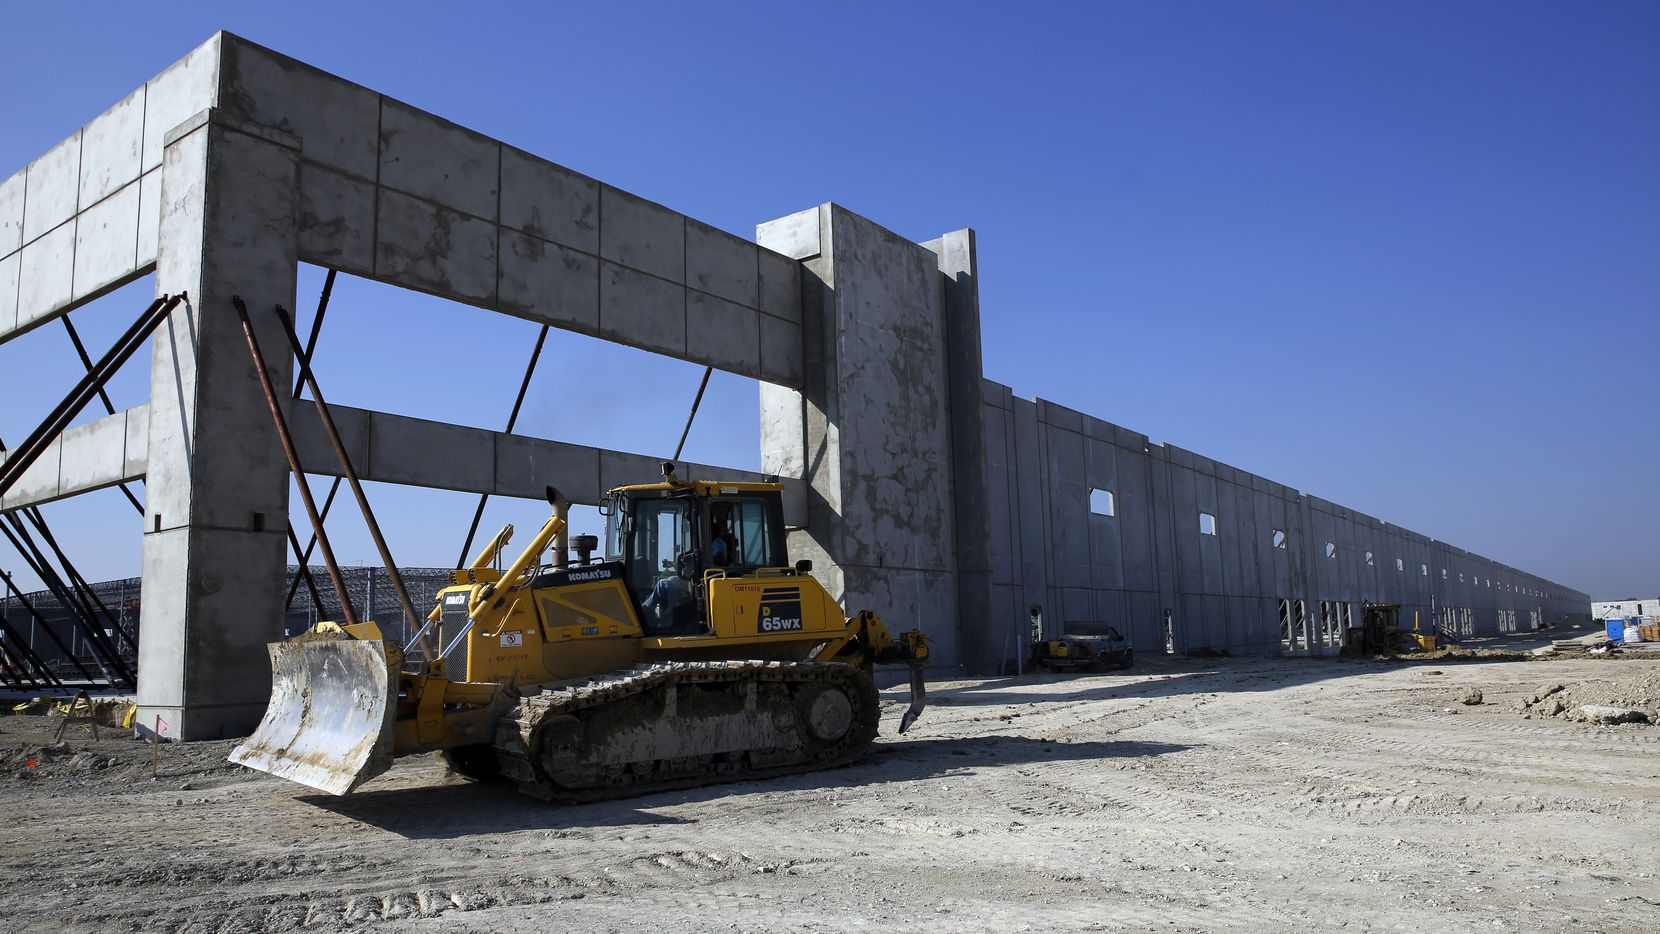 More than 30 million square feet of warehouse space is being built in North Texas, the most of any U.S. metro area.